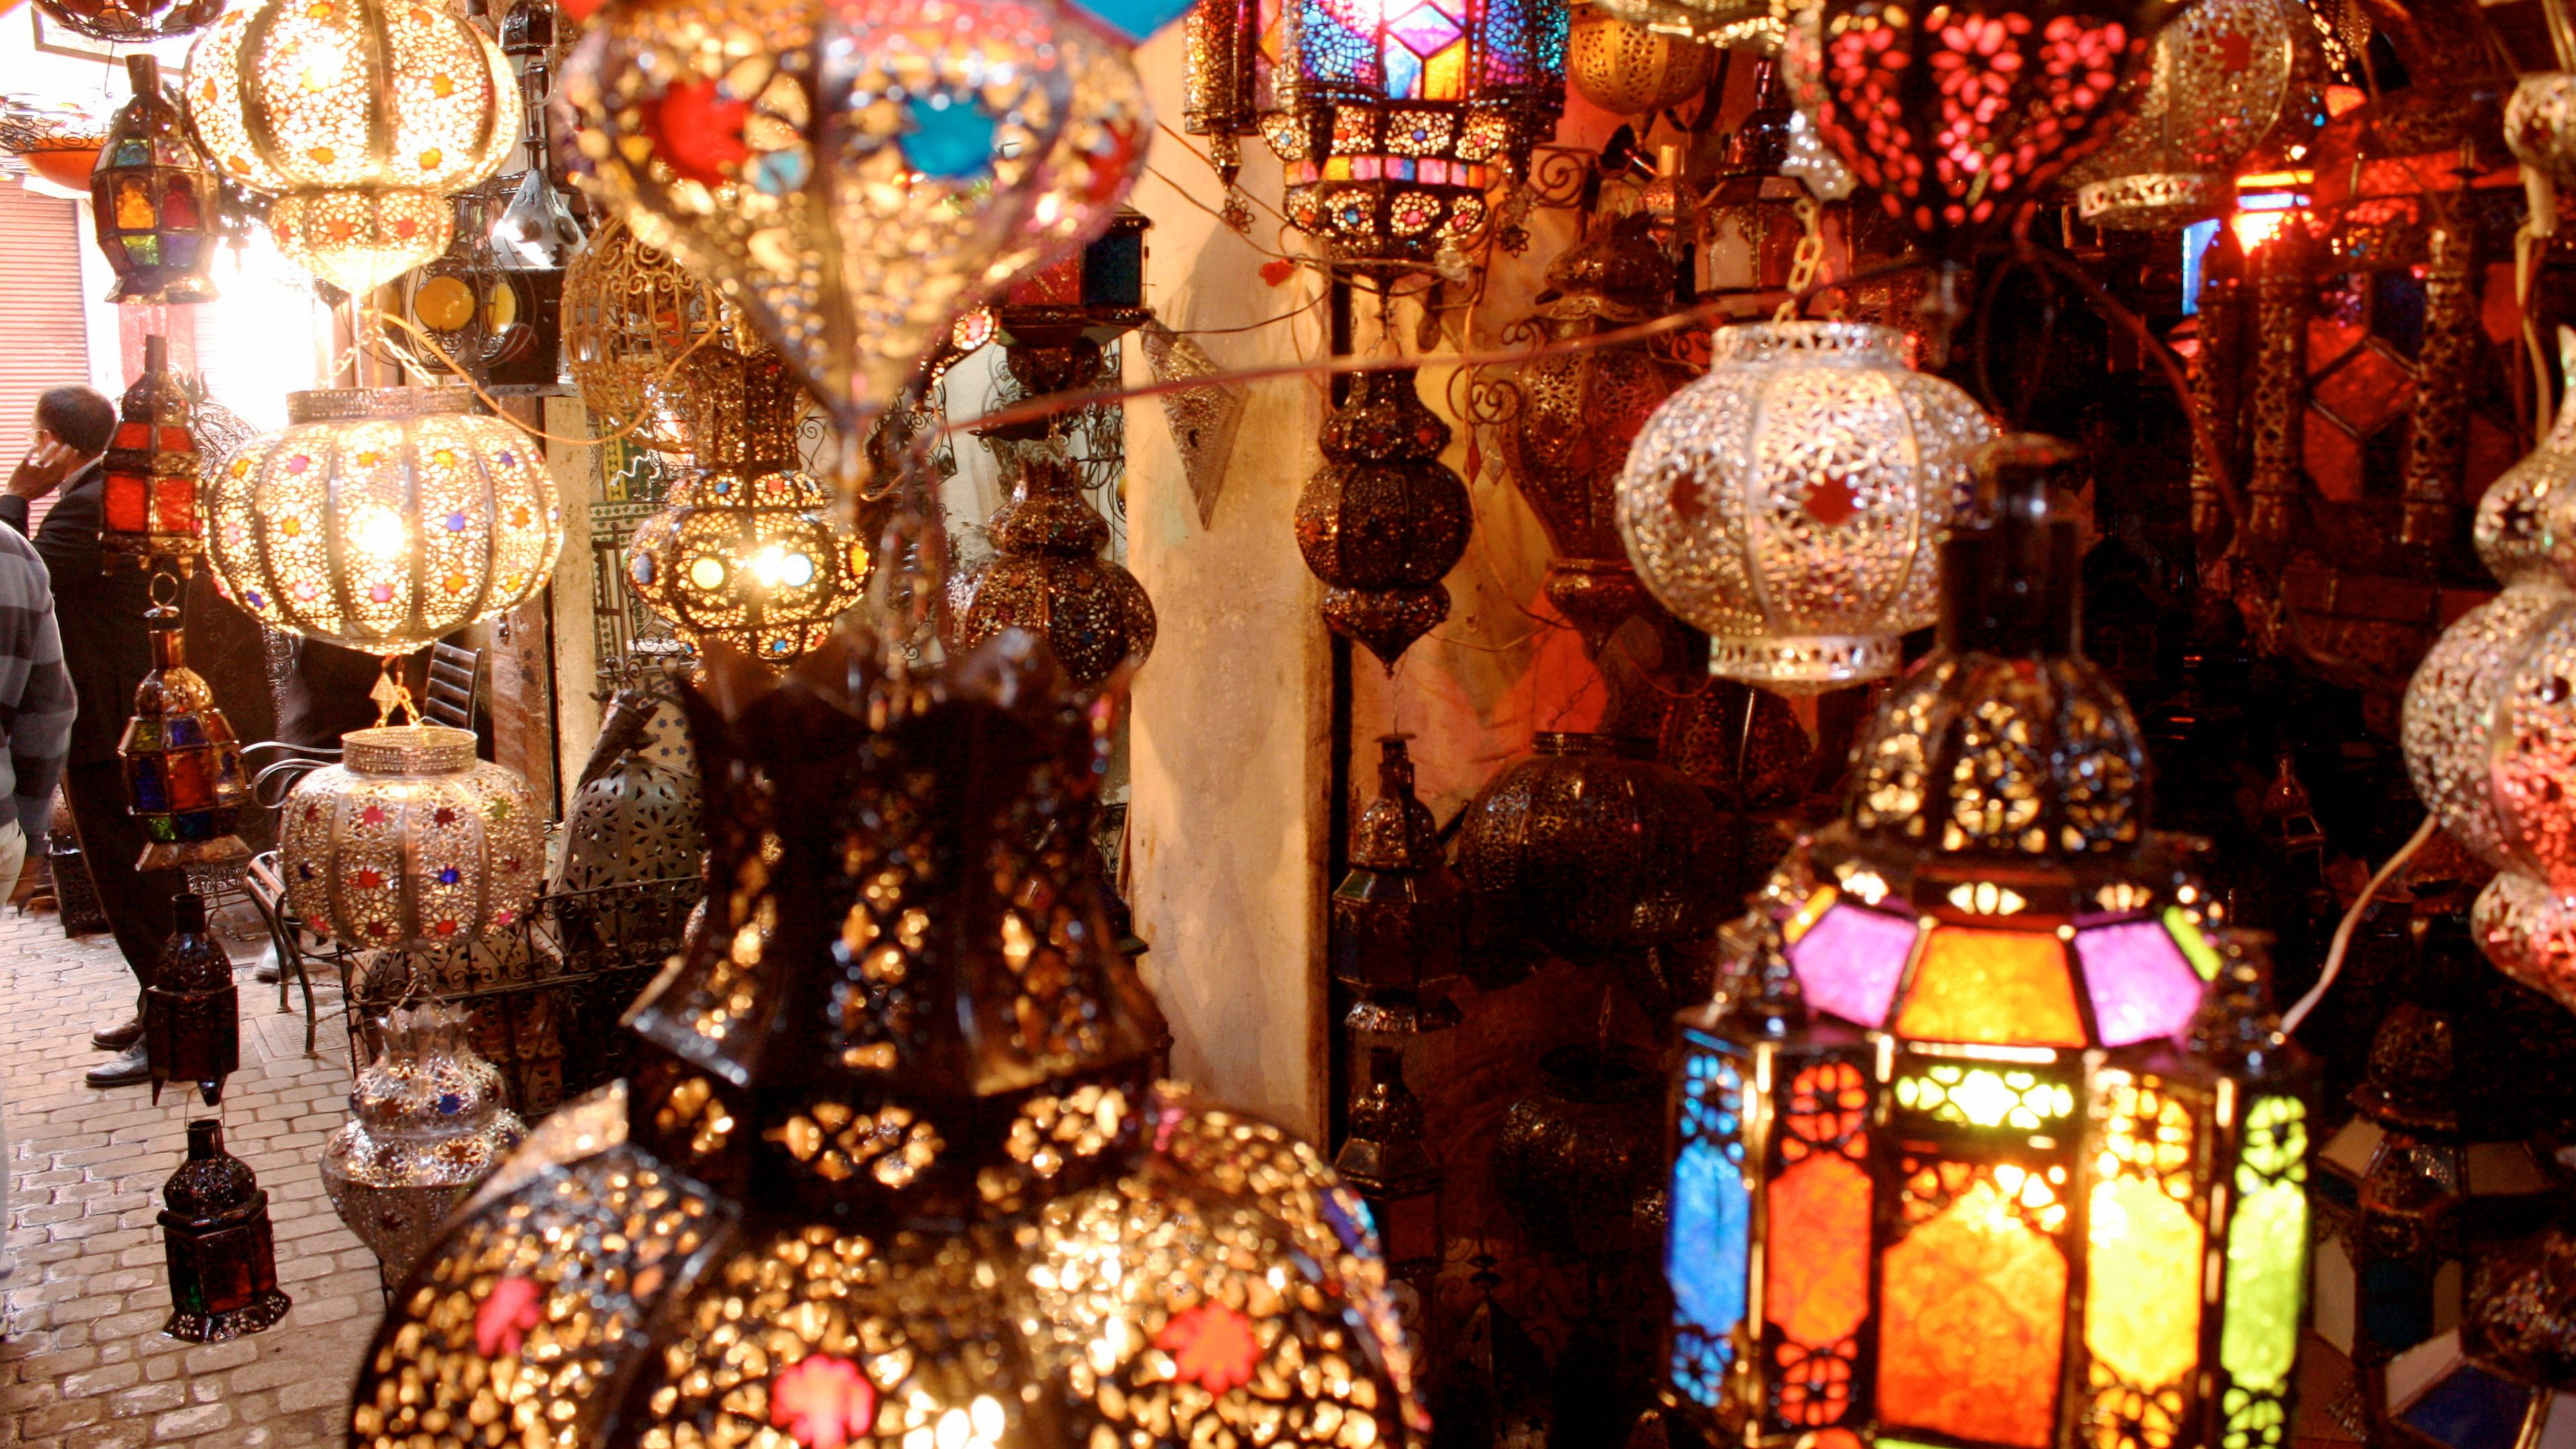 Lanterns for sale at a market in Marrakech